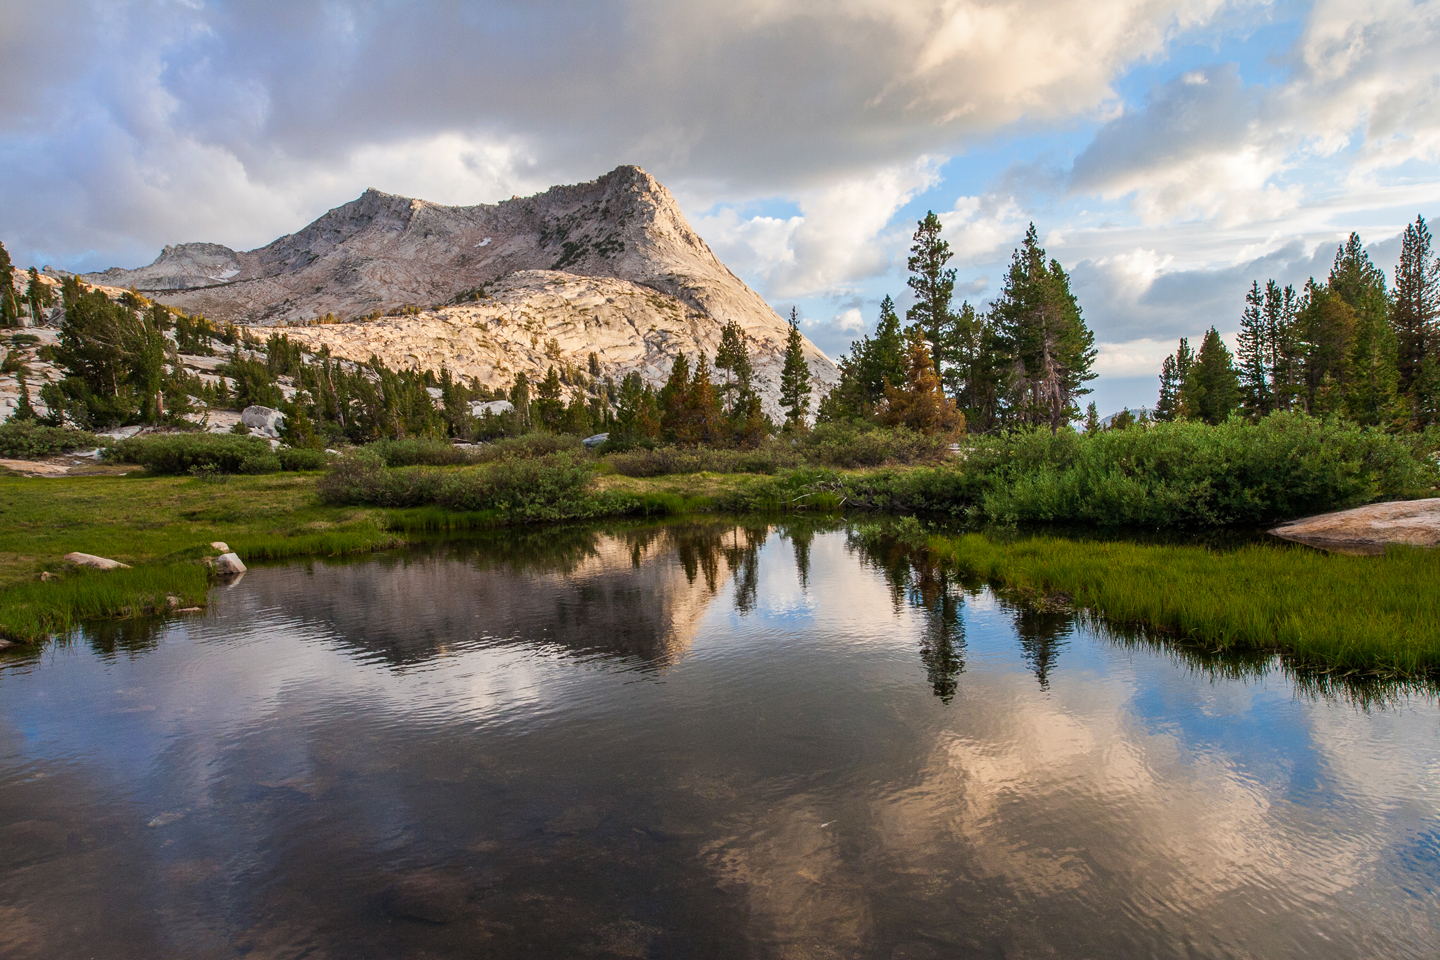 Backpacking through the High Sierra Camps | Yosemite National Park, California